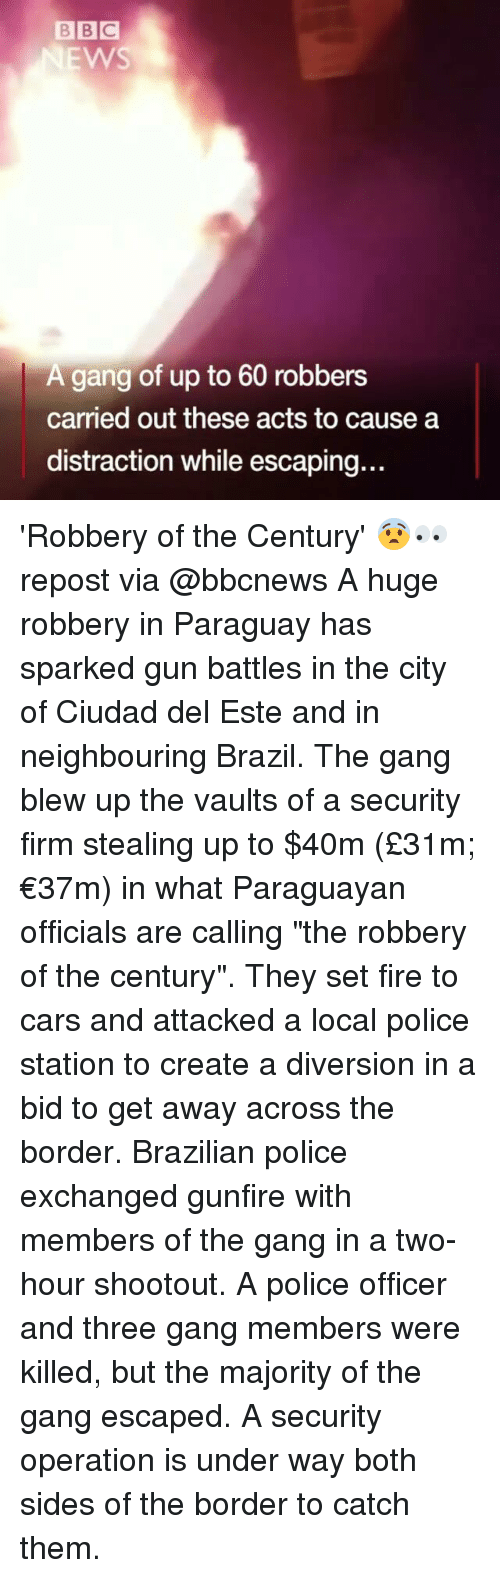 "Diversion: BBC  EWS  A gang of up to 60 robbers  carried out these acts to cause a  distraction while escaping.. 'Robbery of the Century' 😨👀 repost via @bbcnews A huge robbery in Paraguay has sparked gun battles in the city of Ciudad del Este and in neighbouring Brazil. The gang blew up the vaults of a security firm stealing up to $40m (£31m; €37m) in what Paraguayan officials are calling ""the robbery of the century"". They set fire to cars and attacked a local police station to create a diversion in a bid to get away across the border. Brazilian police exchanged gunfire with members of the gang in a two-hour shootout. A police officer and three gang members were killed, but the majority of the gang escaped. A security operation is under way both sides of the border to catch them."